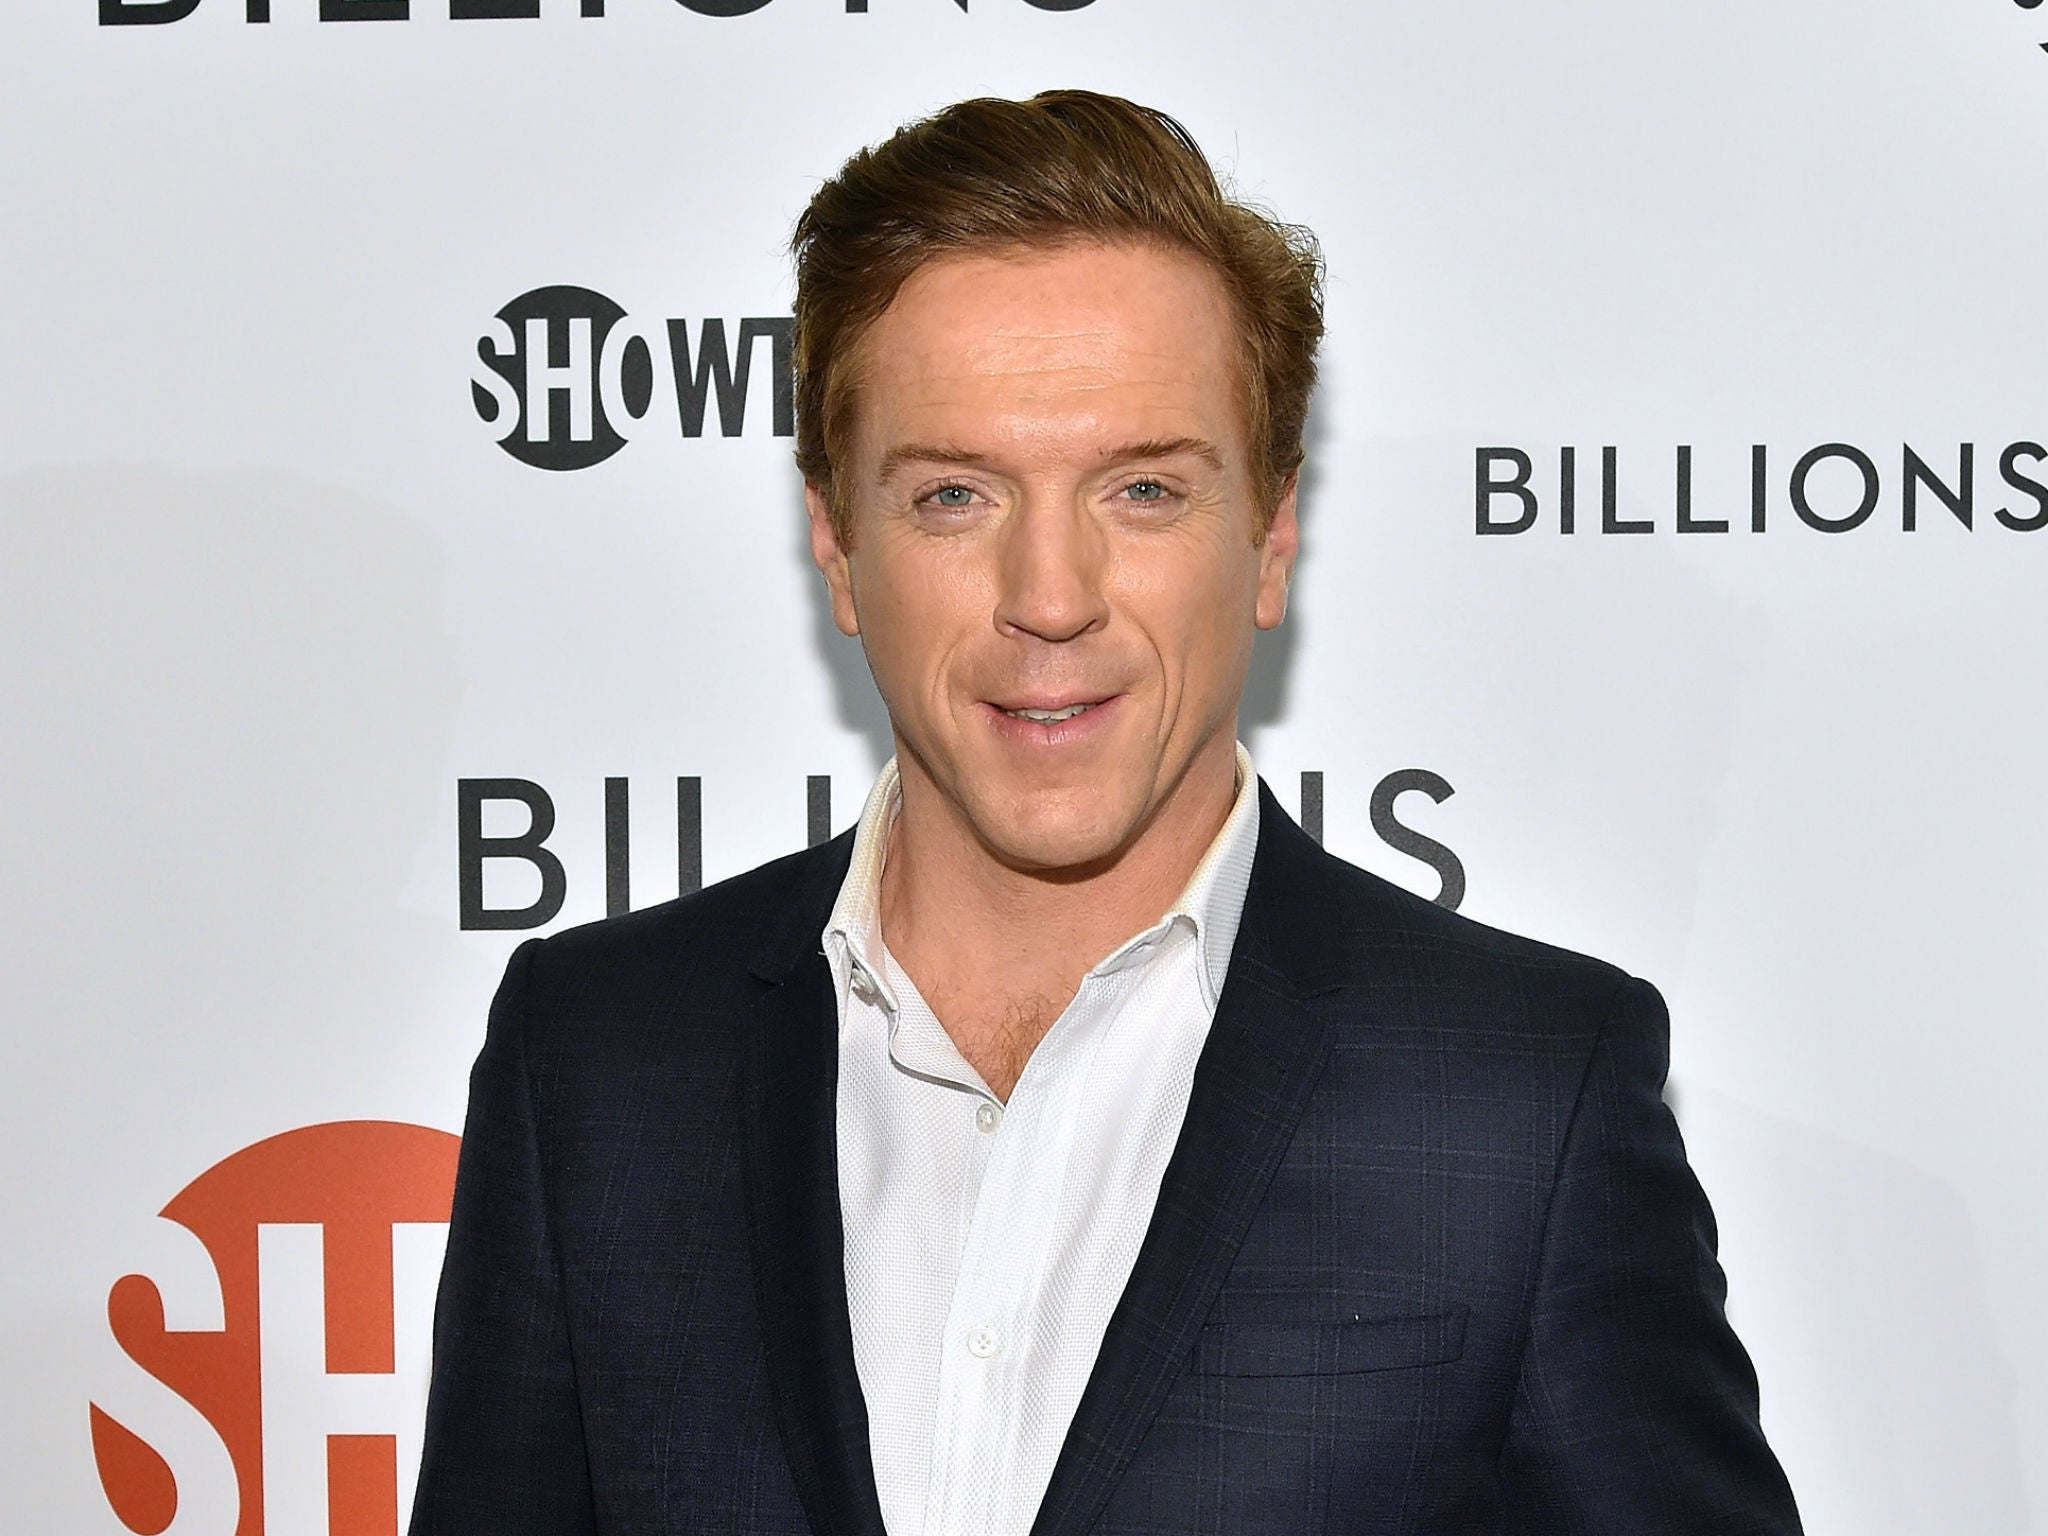 John Lewis Wedding Insurance Promo Code: Damian Lewis Tells Critics They 'missed The Point' Over